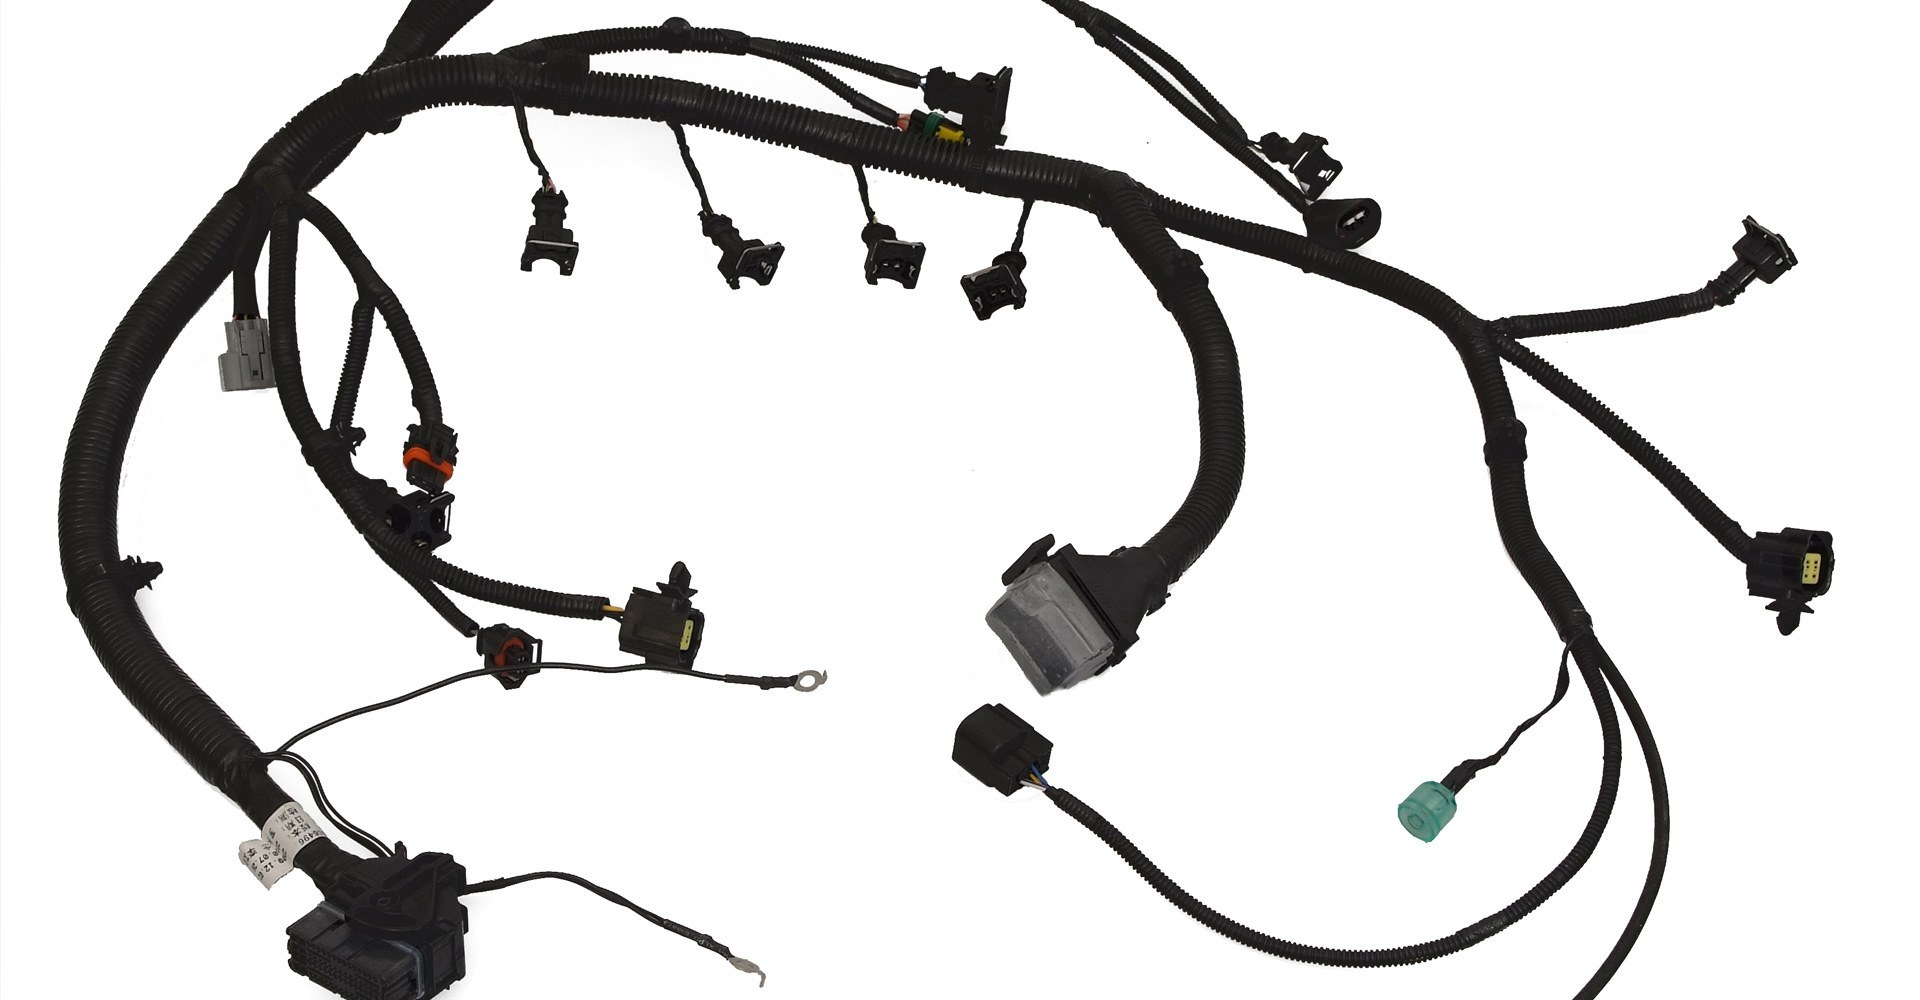 Wiring Harness Manufacturers In World : Automotive lorom